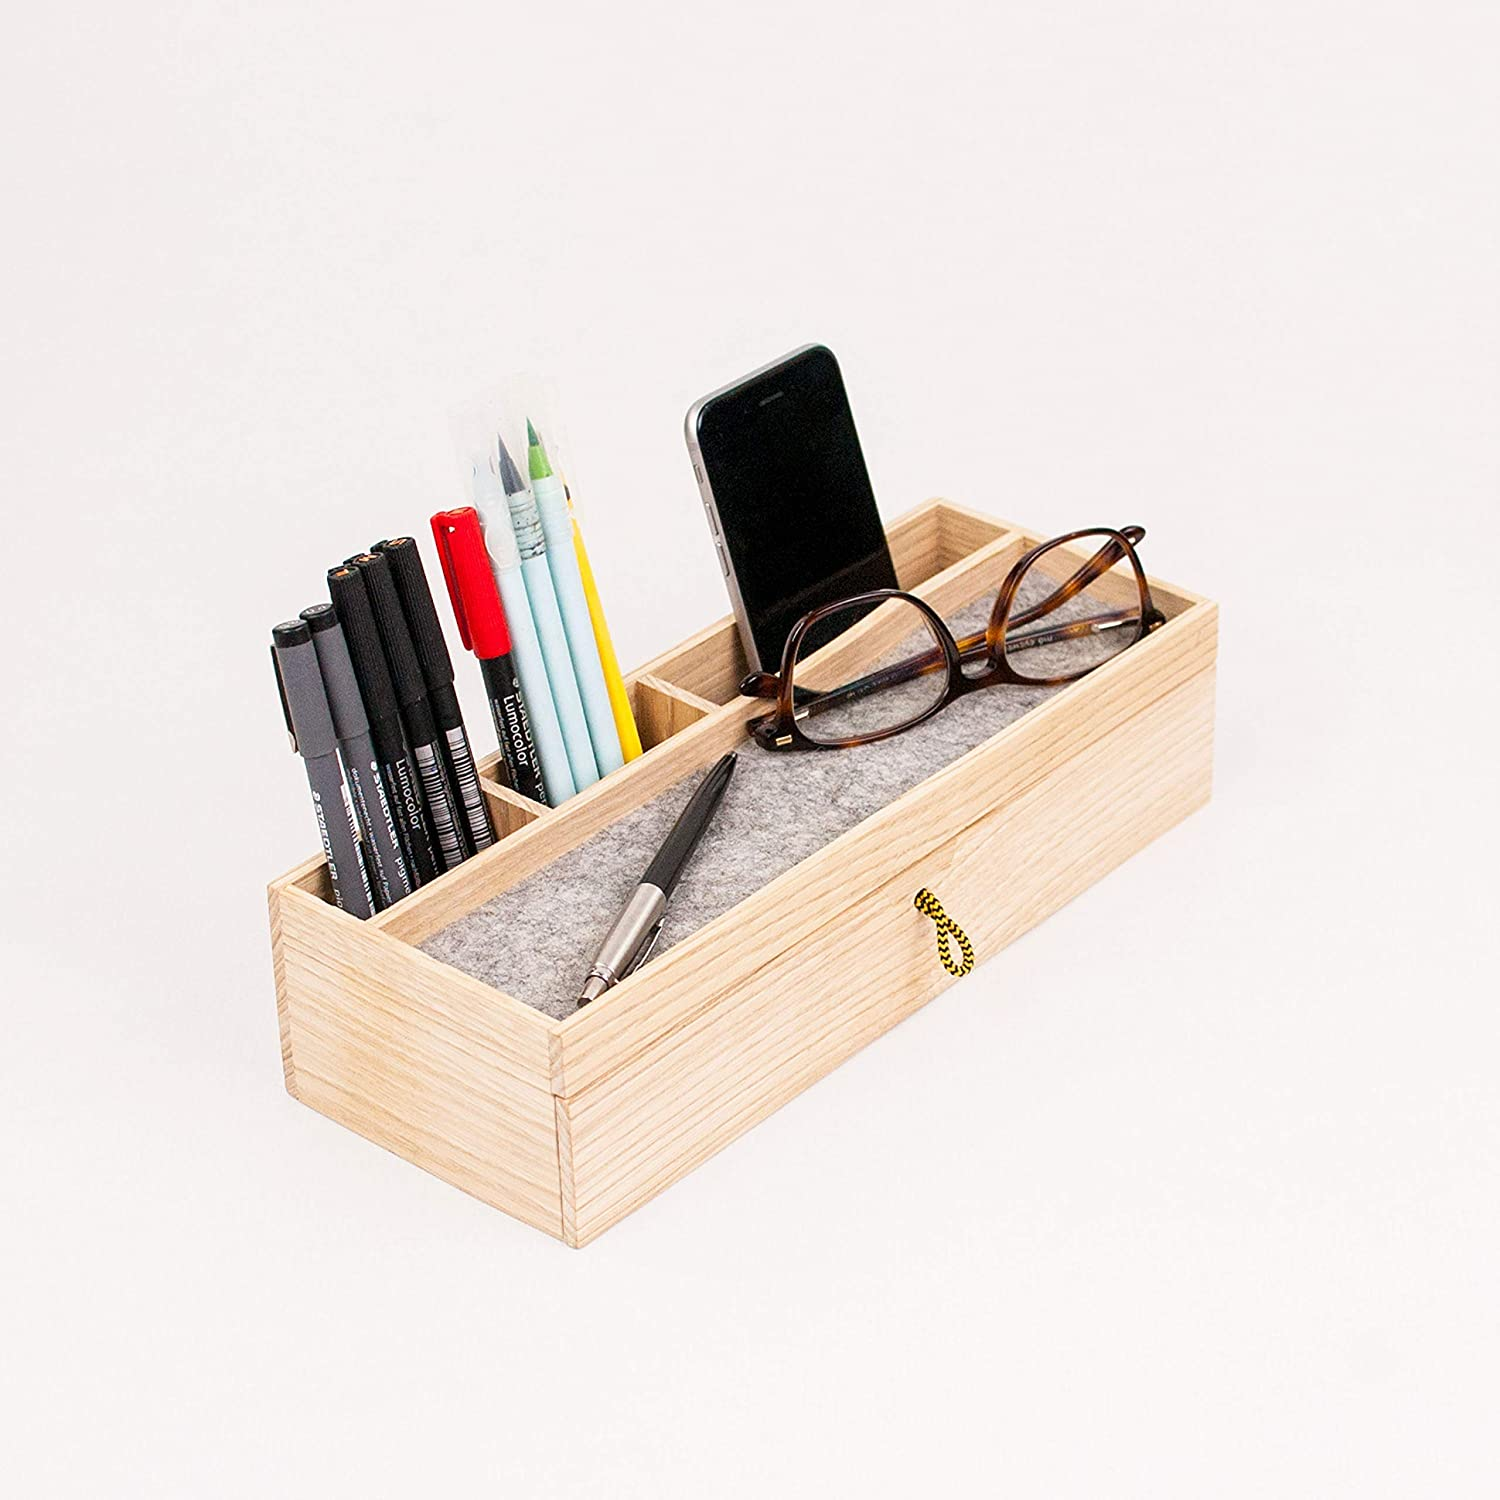 Amazon.com: Wood desk organizer with drawer - Modern office desk